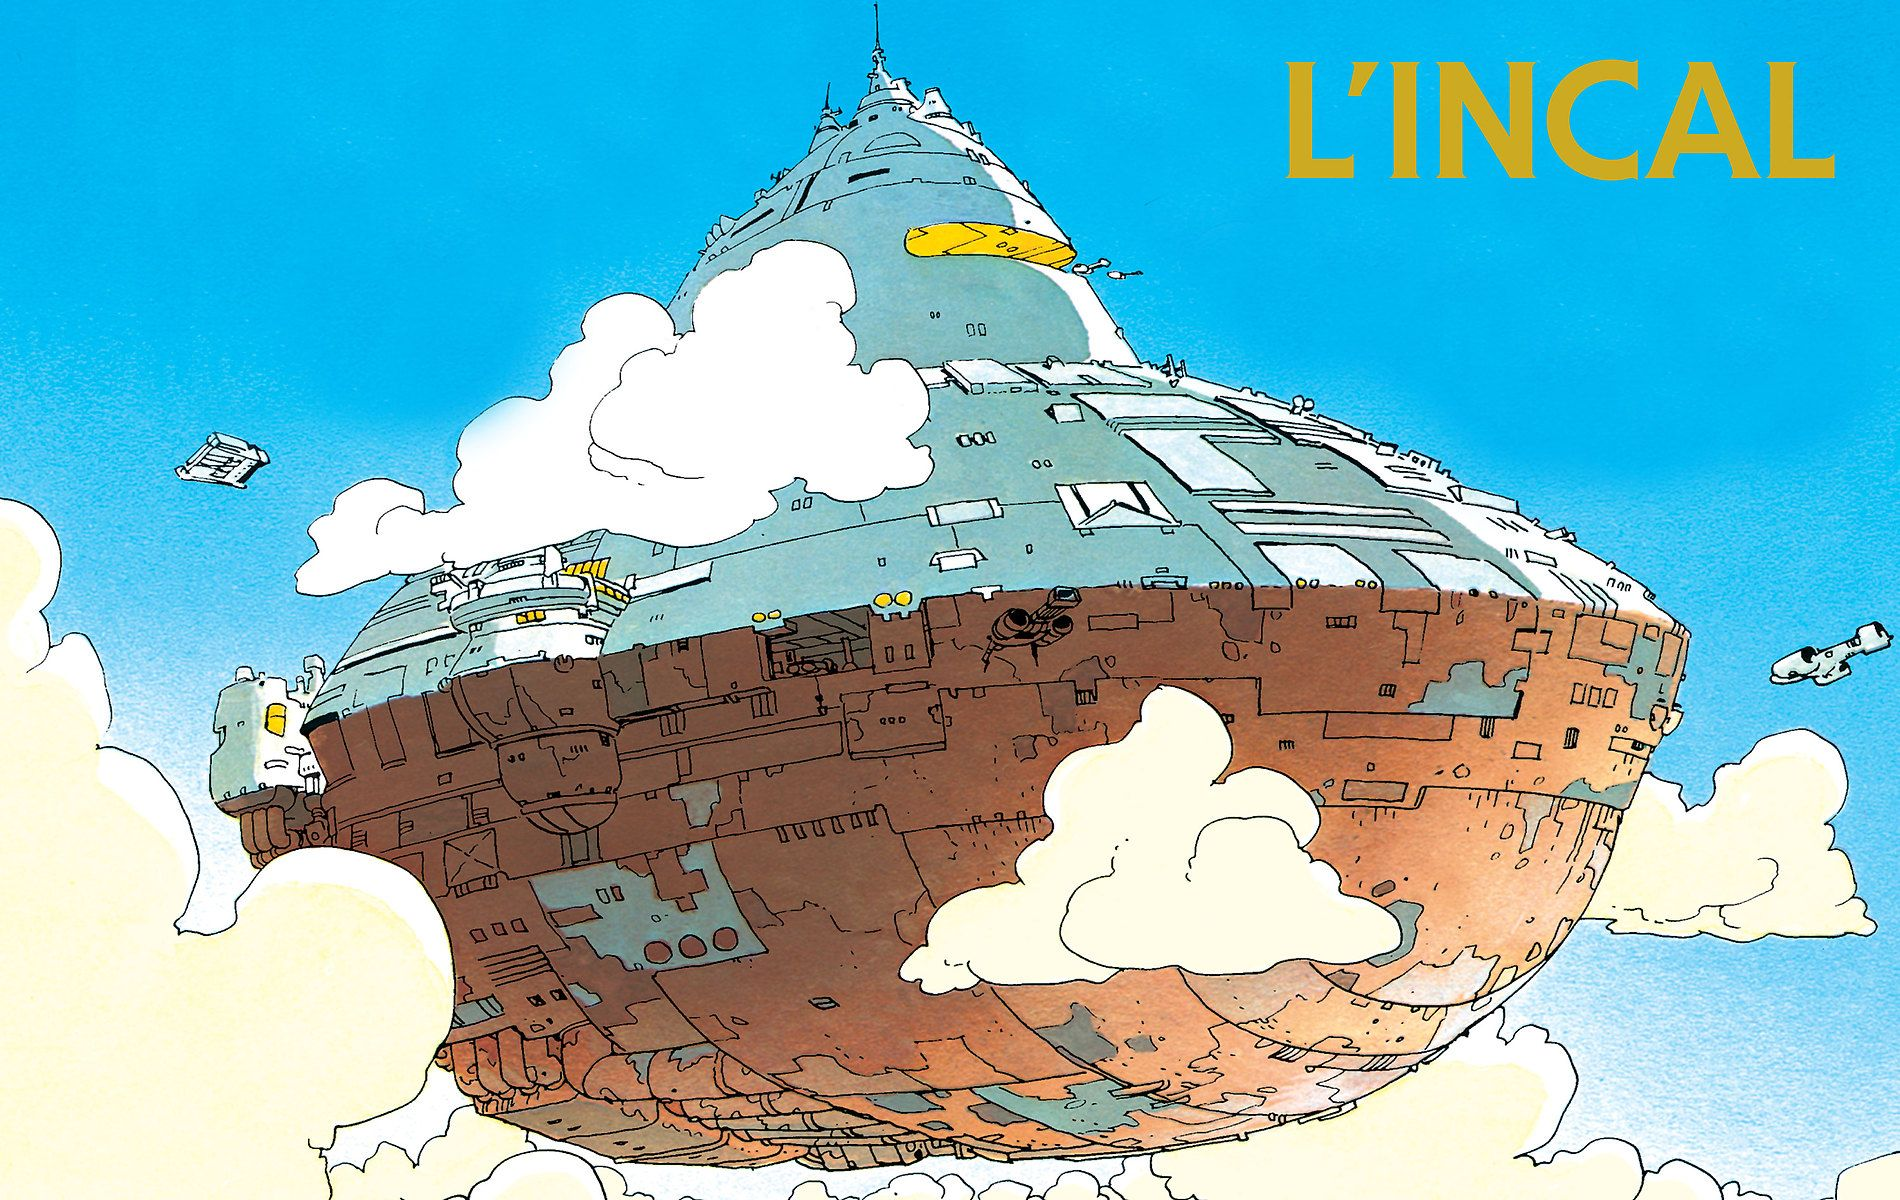 Wallpaper-Incal-3-Moebius